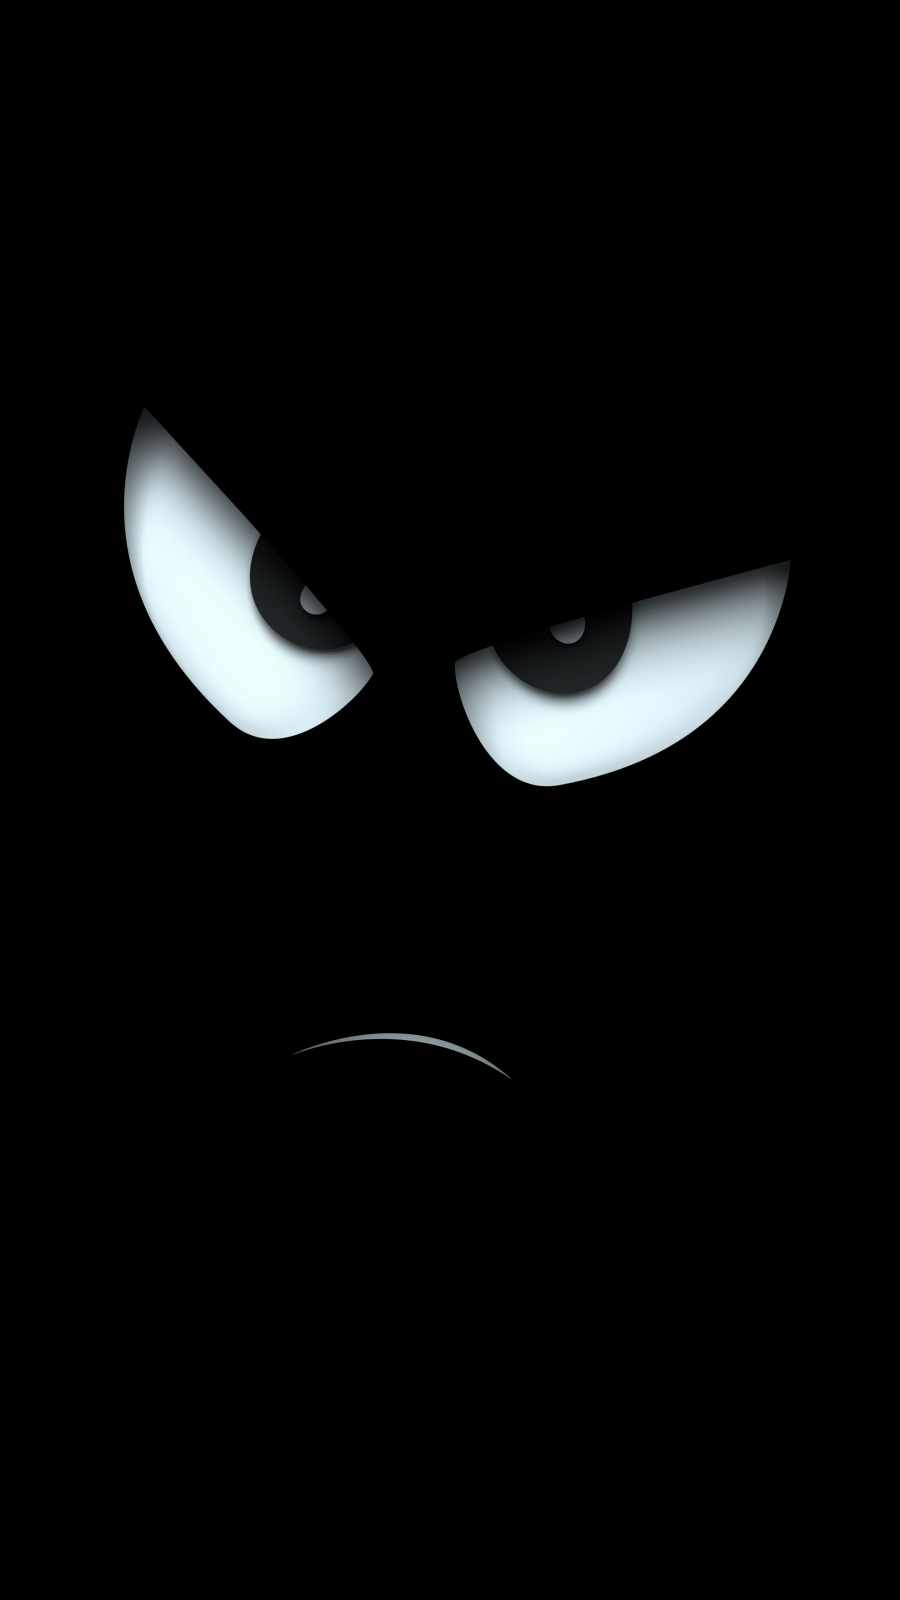 Angry Face iPhone Wallpaper